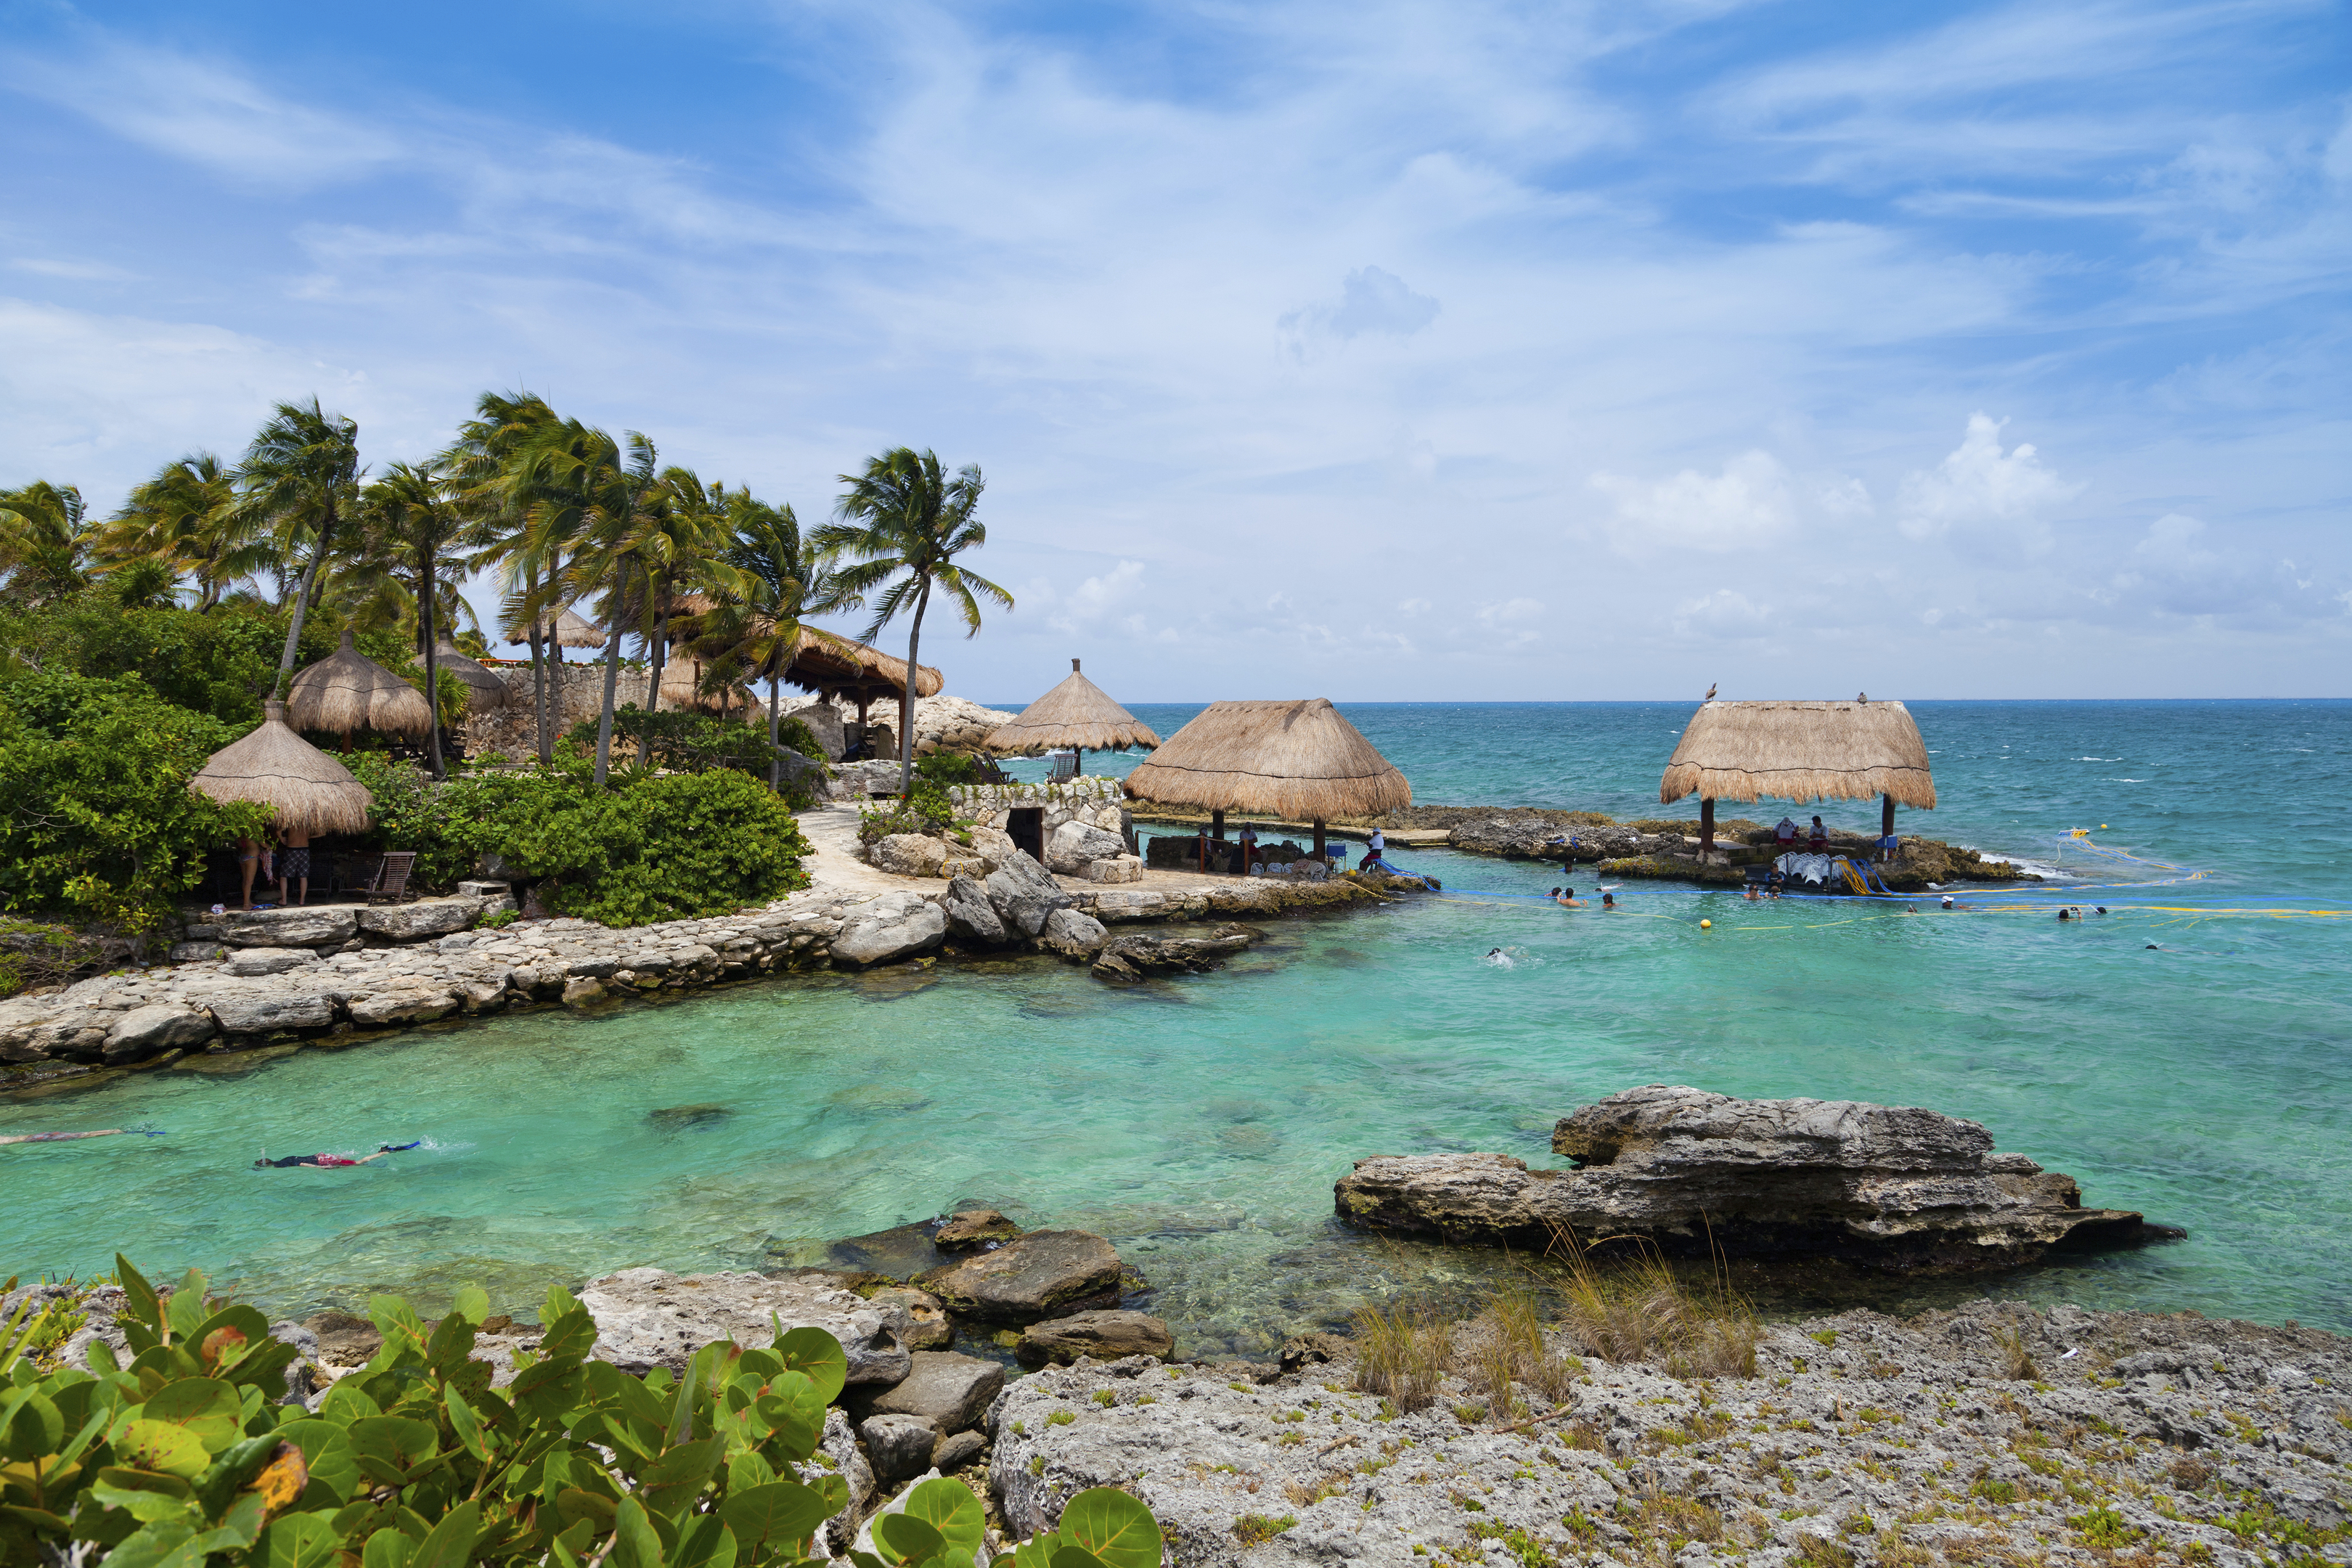 Britons changing £500 for a trip to Cancun will get £76 more in the local currency than 12 months ago, according to the Post Office (Victor Pelaez Torres)